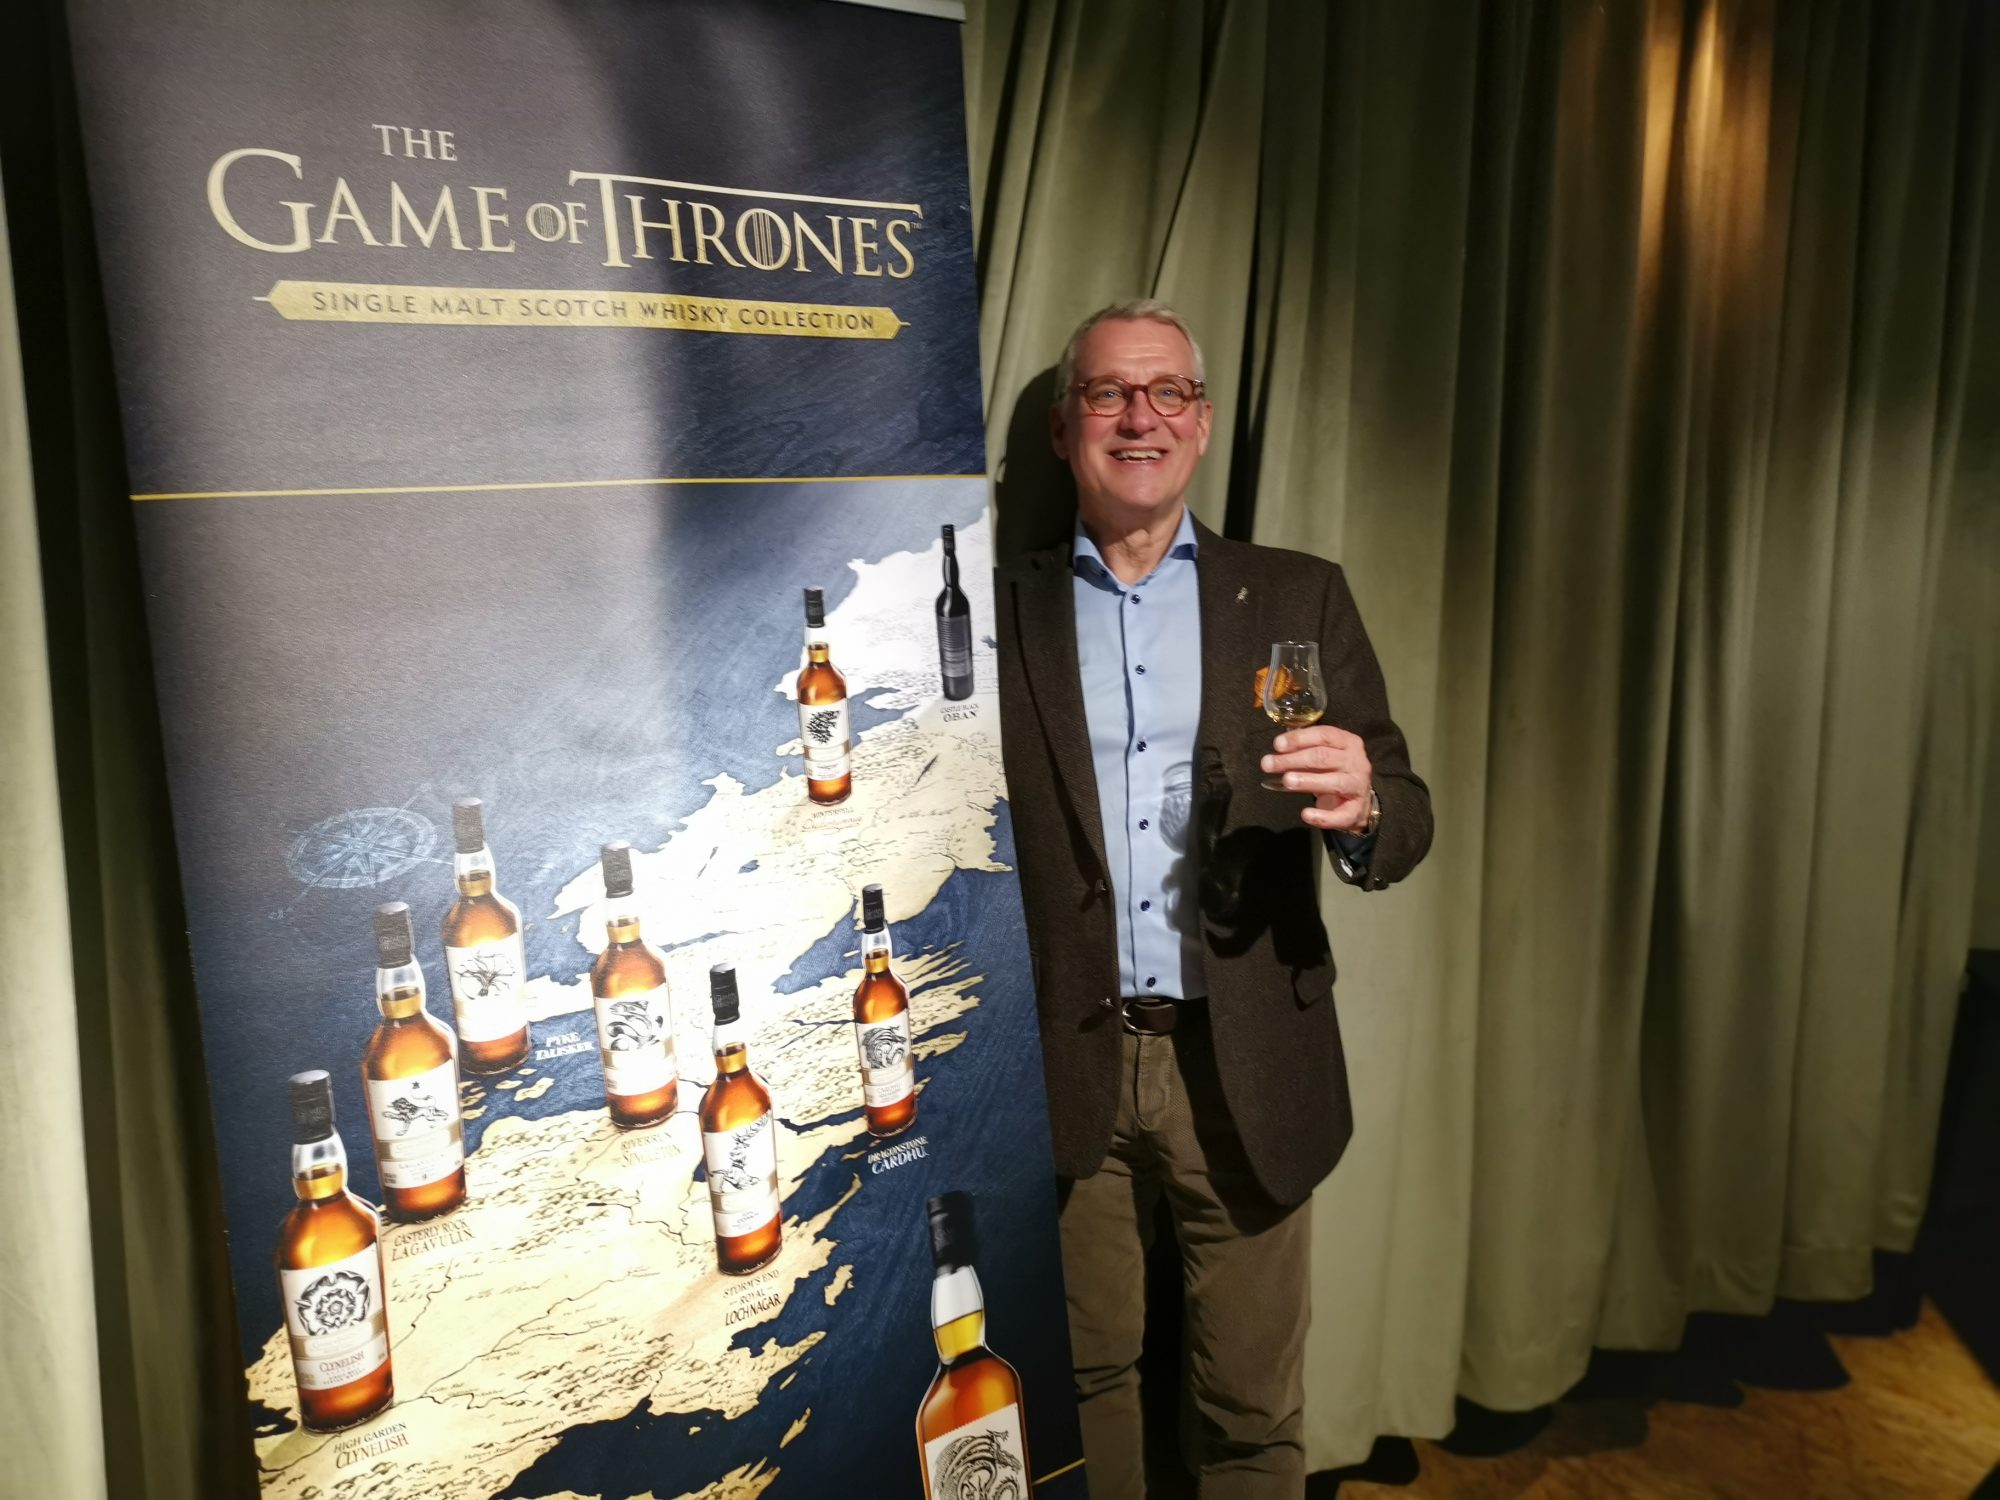 Games of Thrones Single Malt Whisky collection